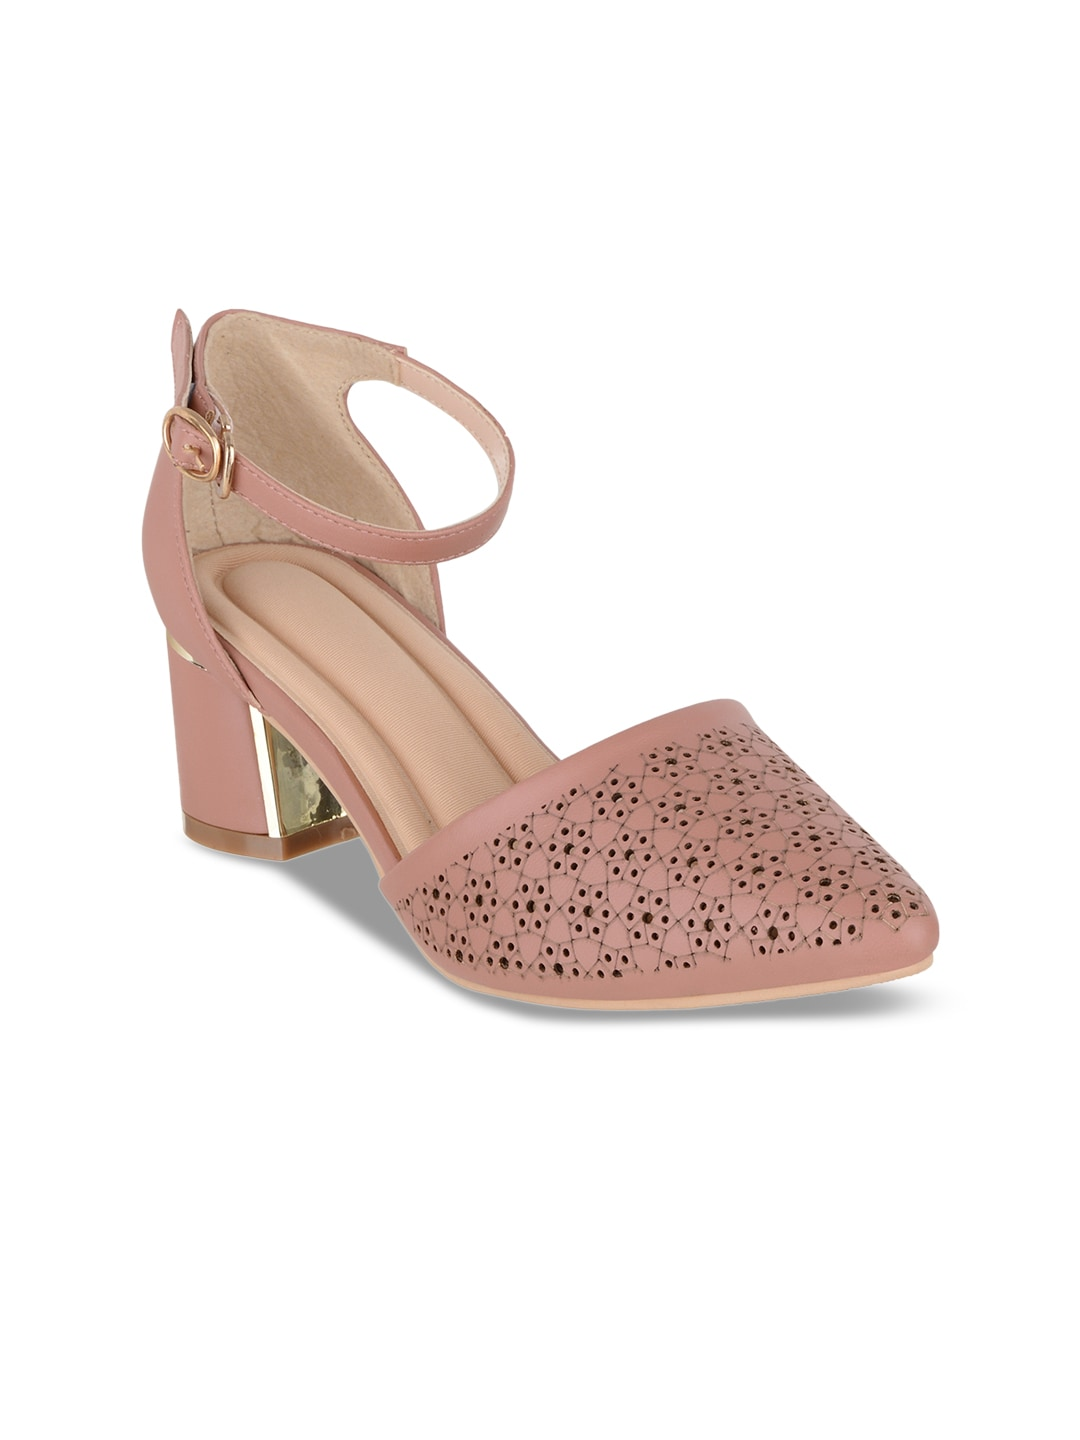 5b9e89a709a5 Nude Heels - Buy Nude Heels online in India